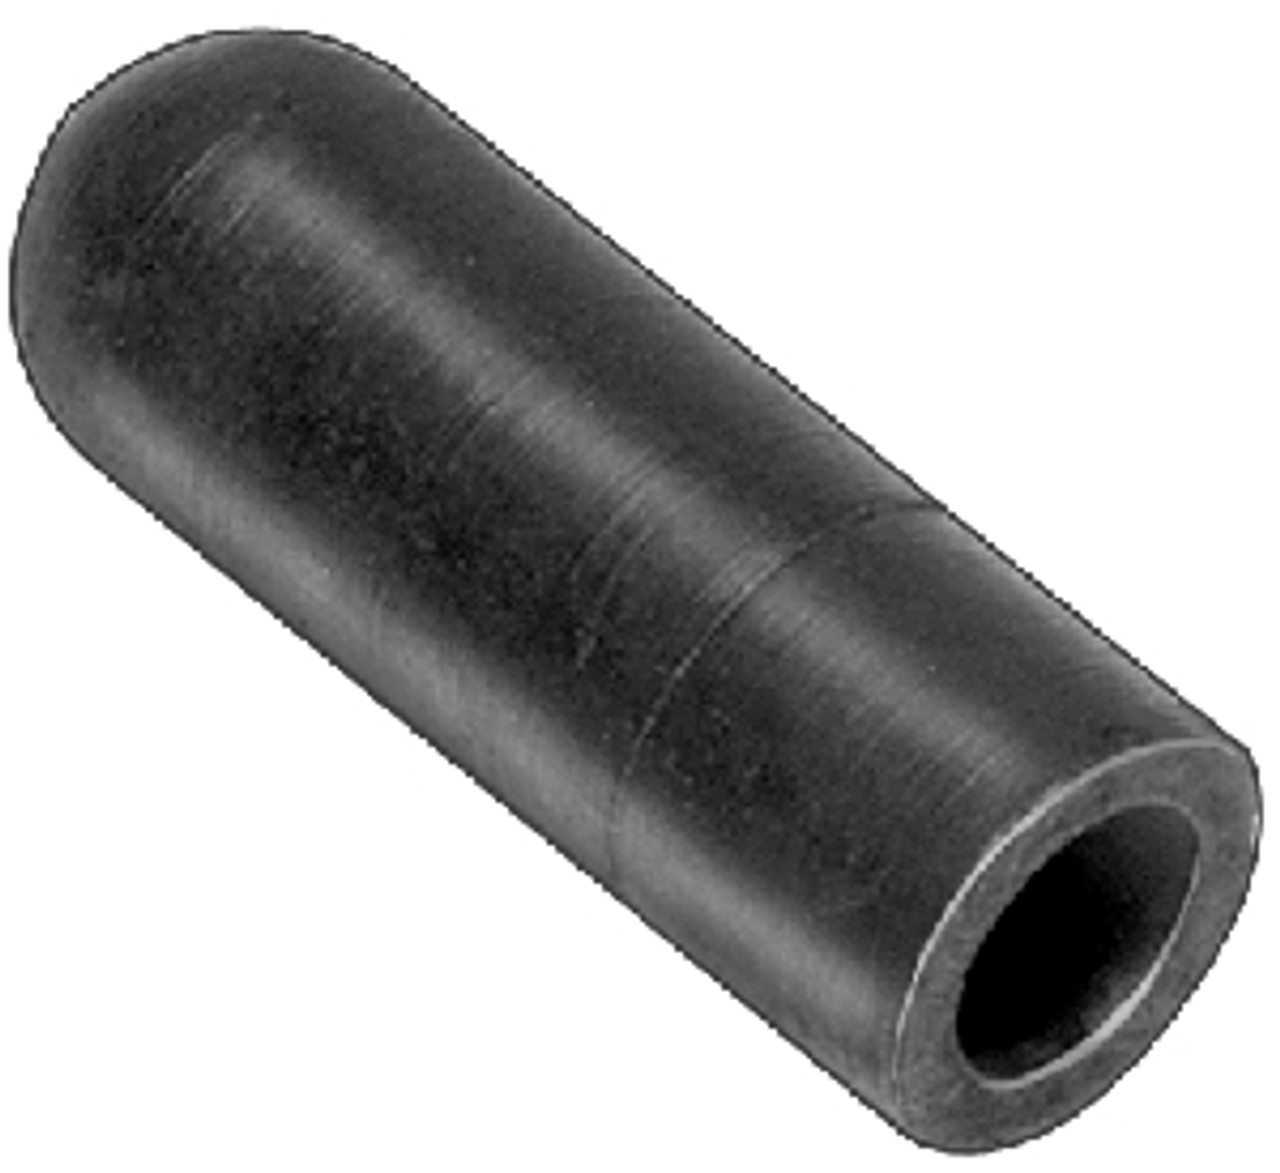 """Ford 5/16"""" O.D. Tube Size 1-1/4"""" Inside Length Caps For Unused Manifold Holes 25 Per Box"""